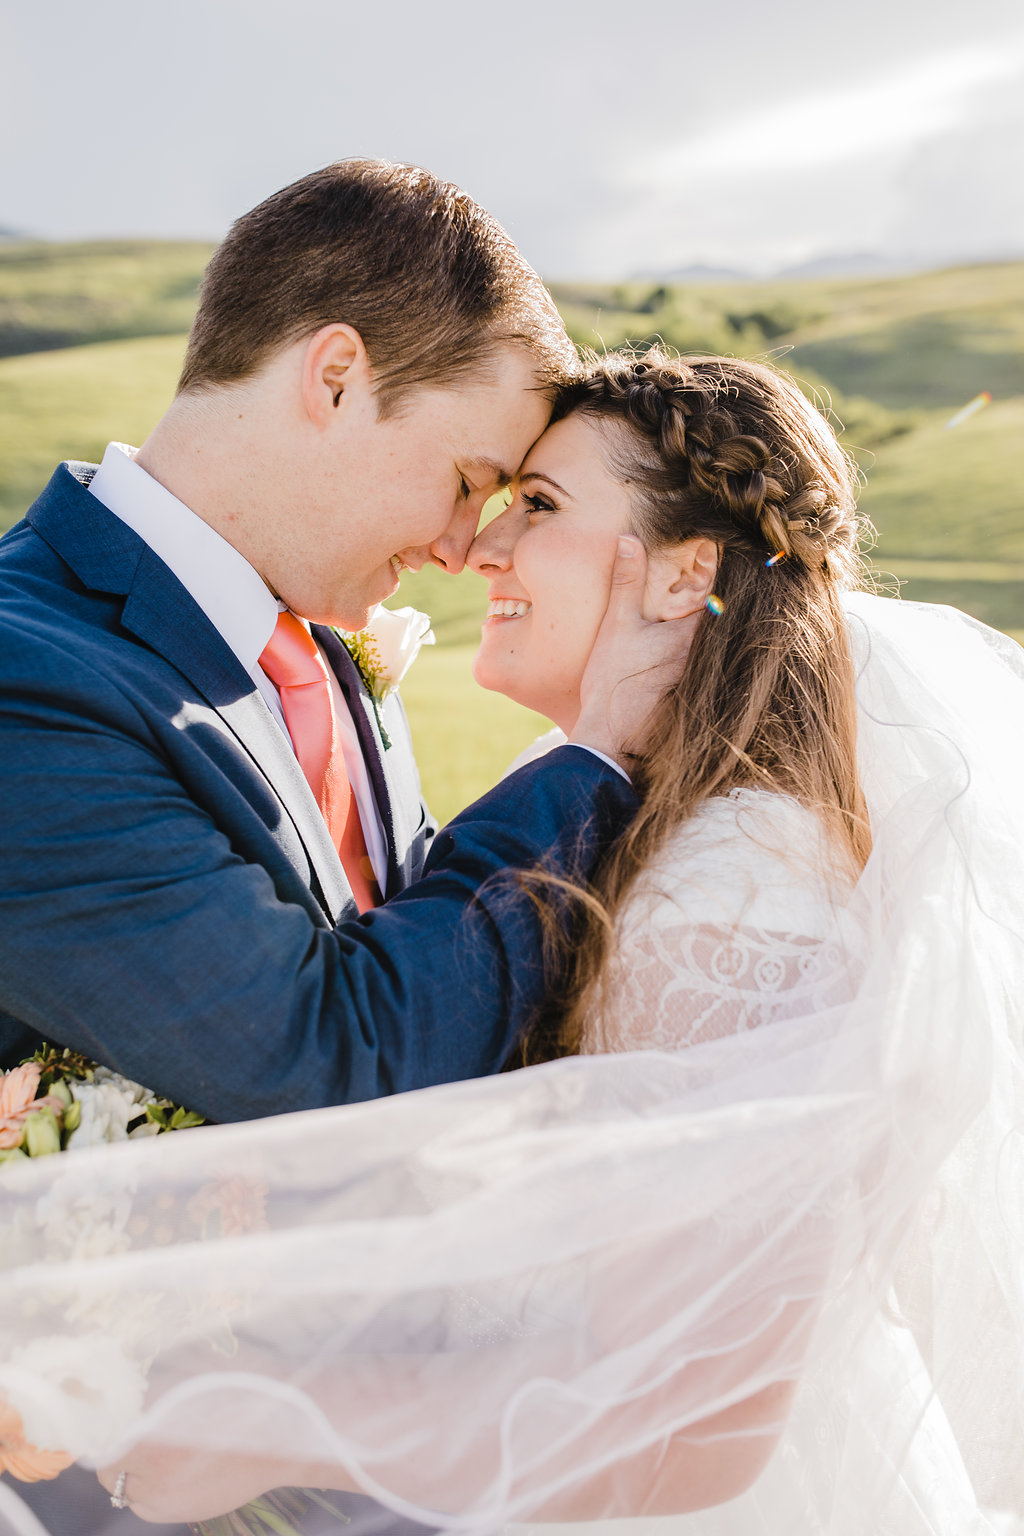 outdoor wedding photographer northern utah cache valley wedding photography bridal veil adventurous couple in love